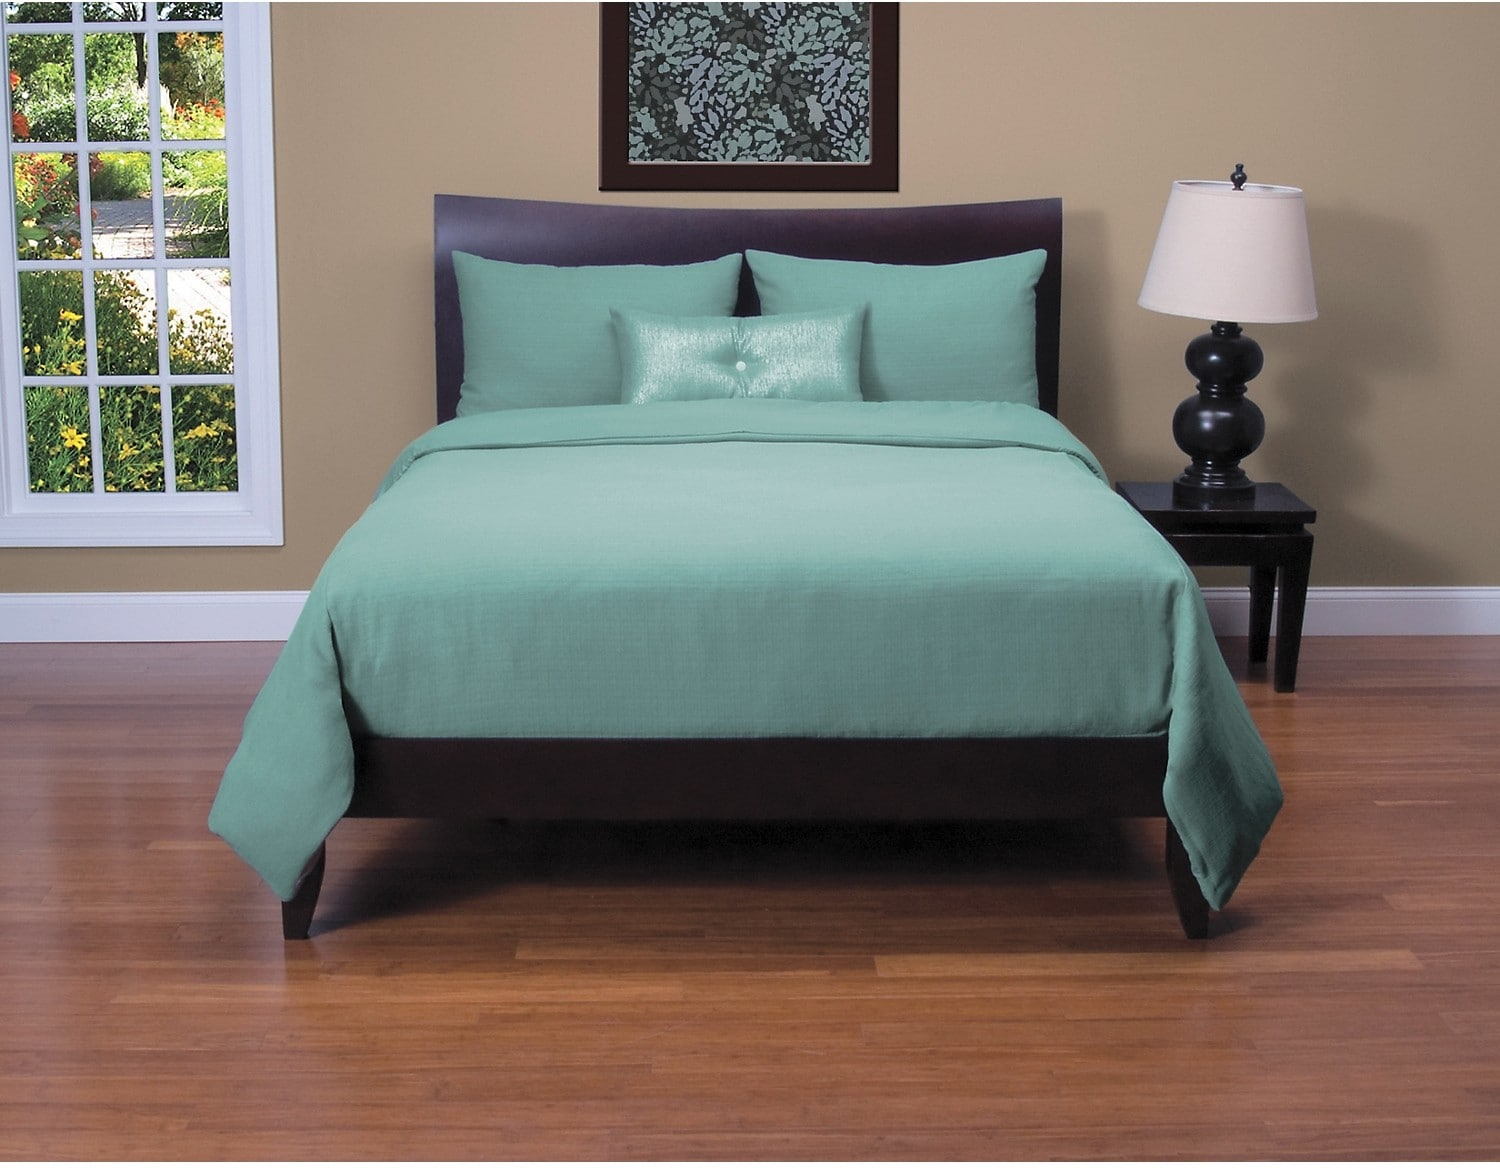 Mattresses and Bedding - Belfast Teal 3 Piece Twin Duvet Cover Set